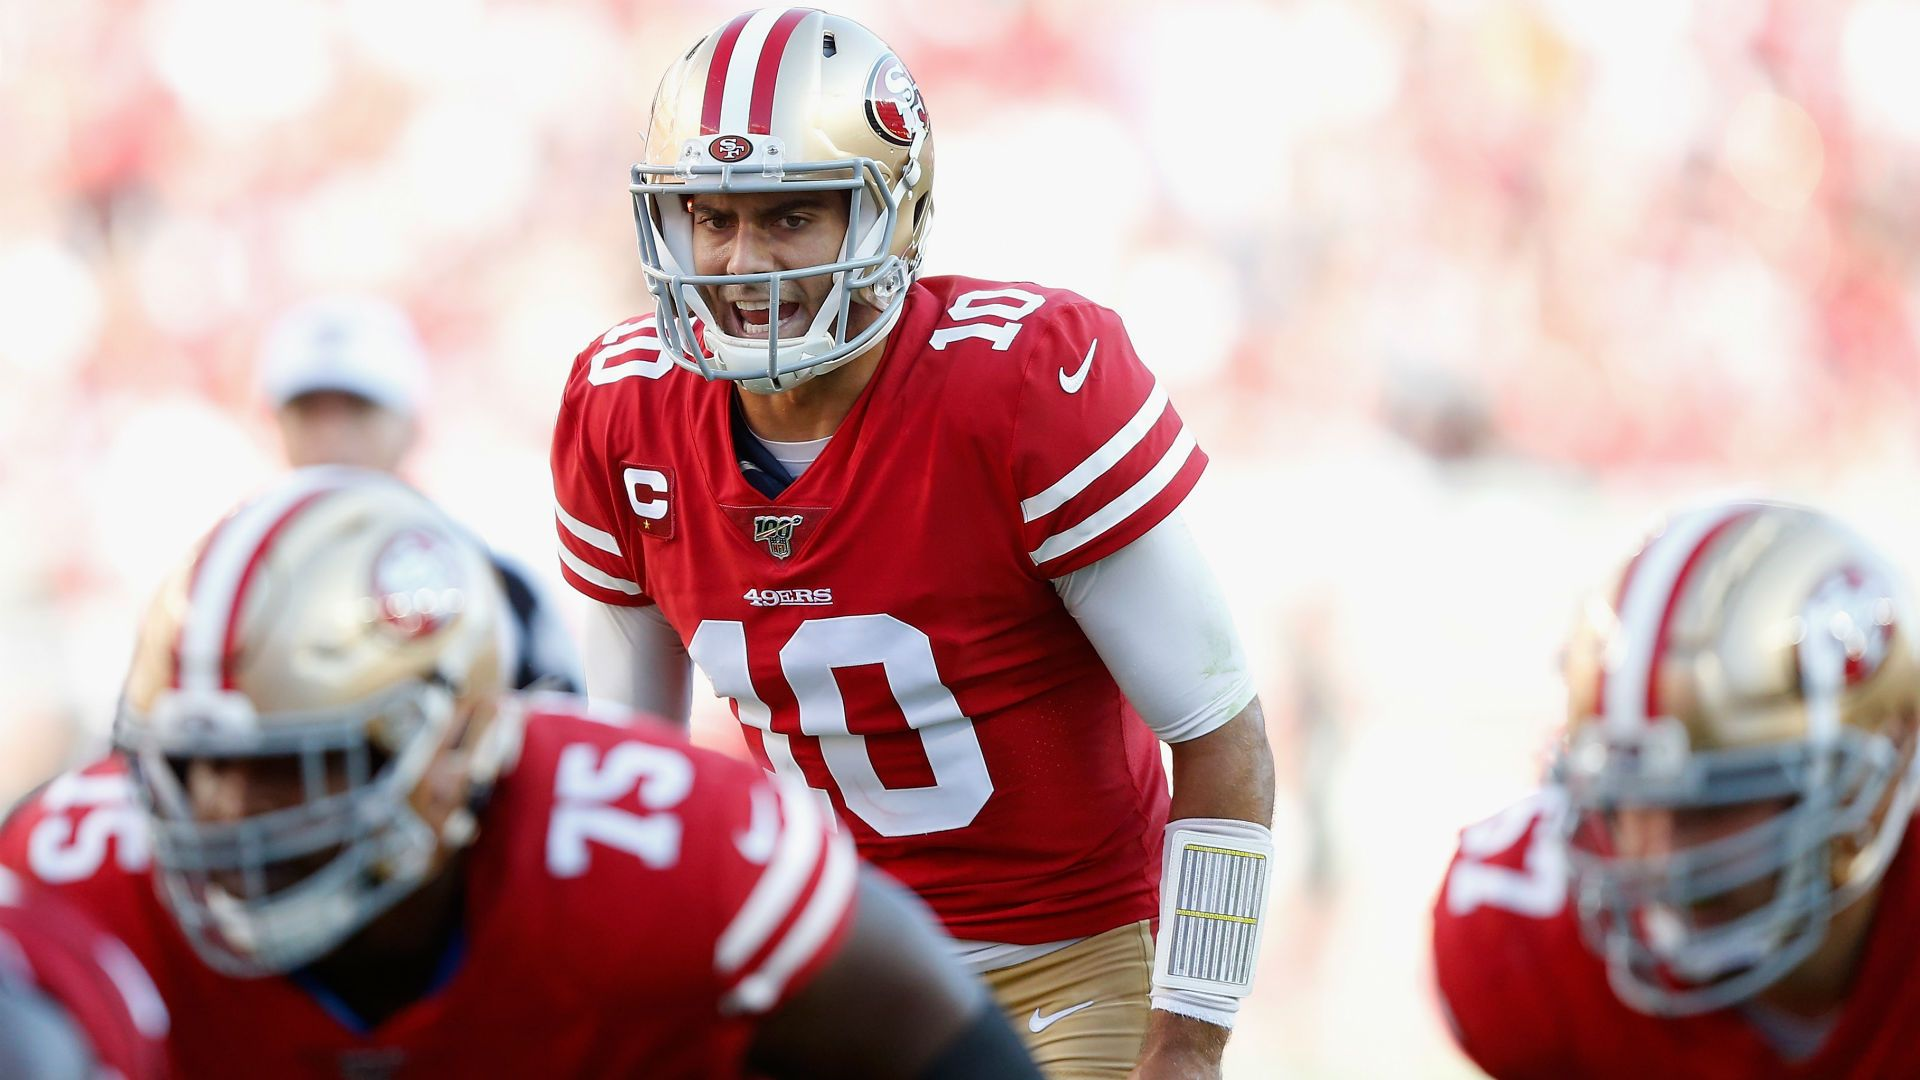 49ers vs. Rams odds, prediction, betting trends for